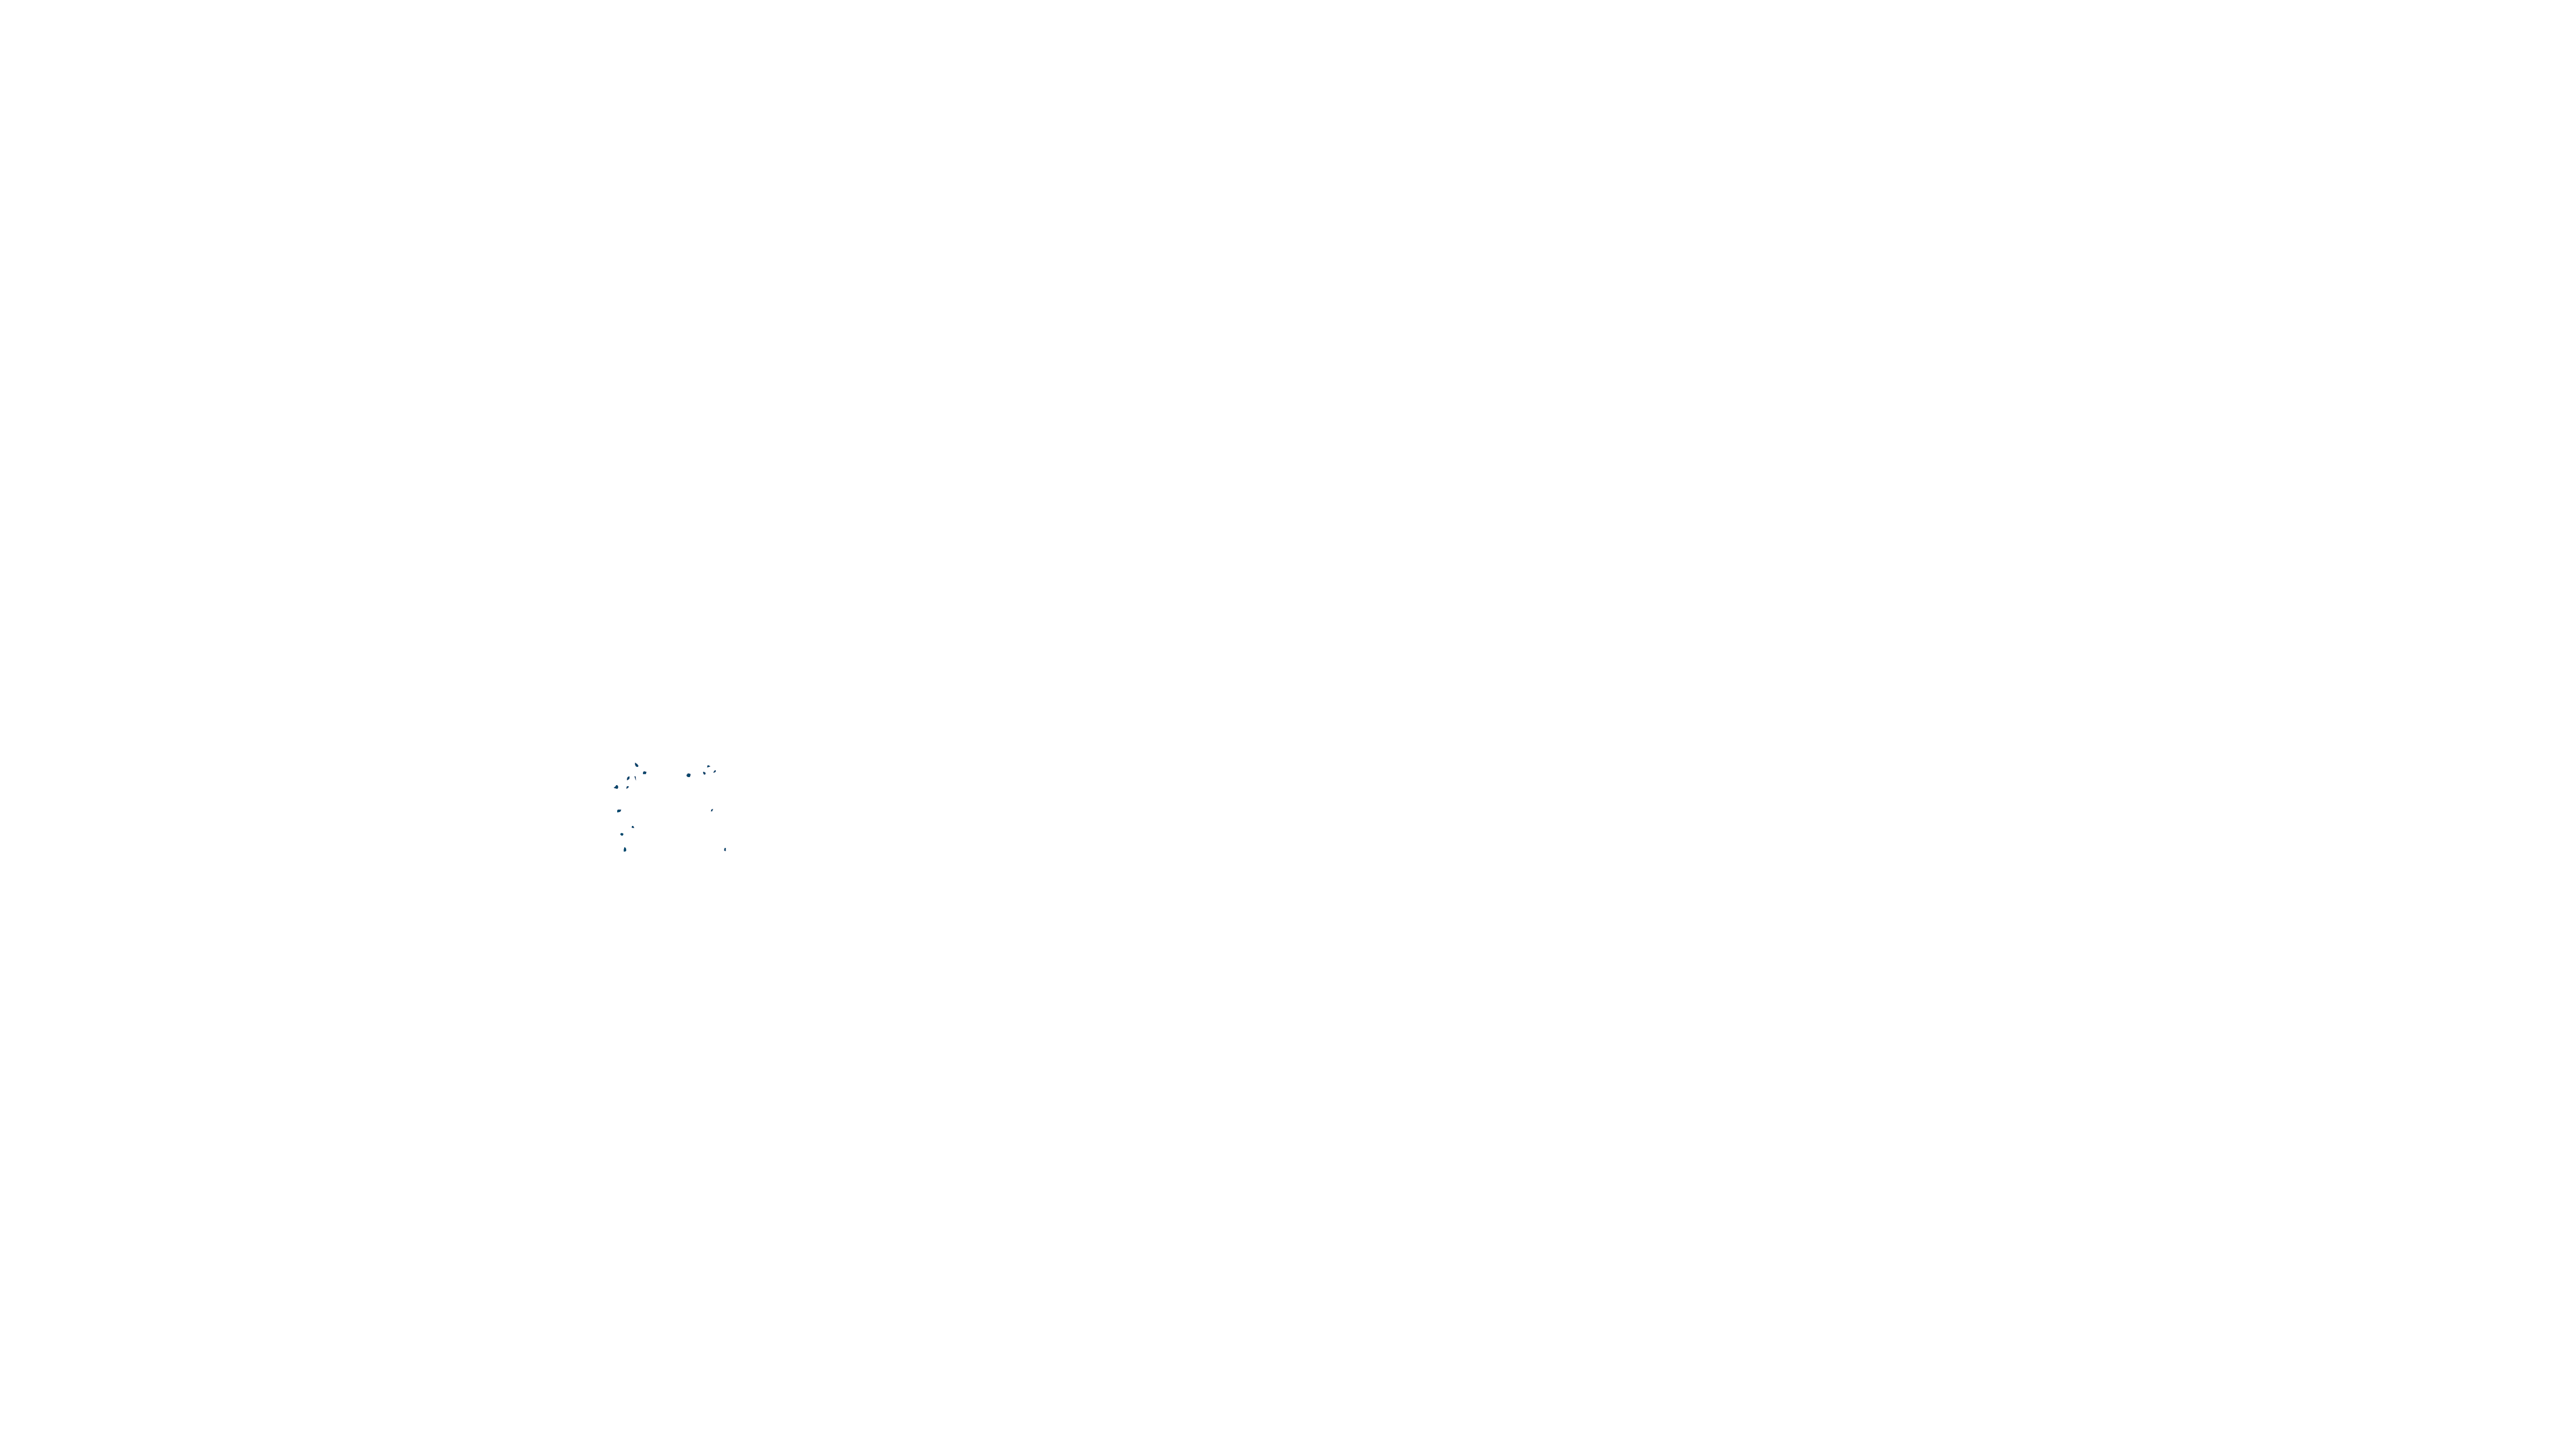 Brothers Twice-Brothers Twice